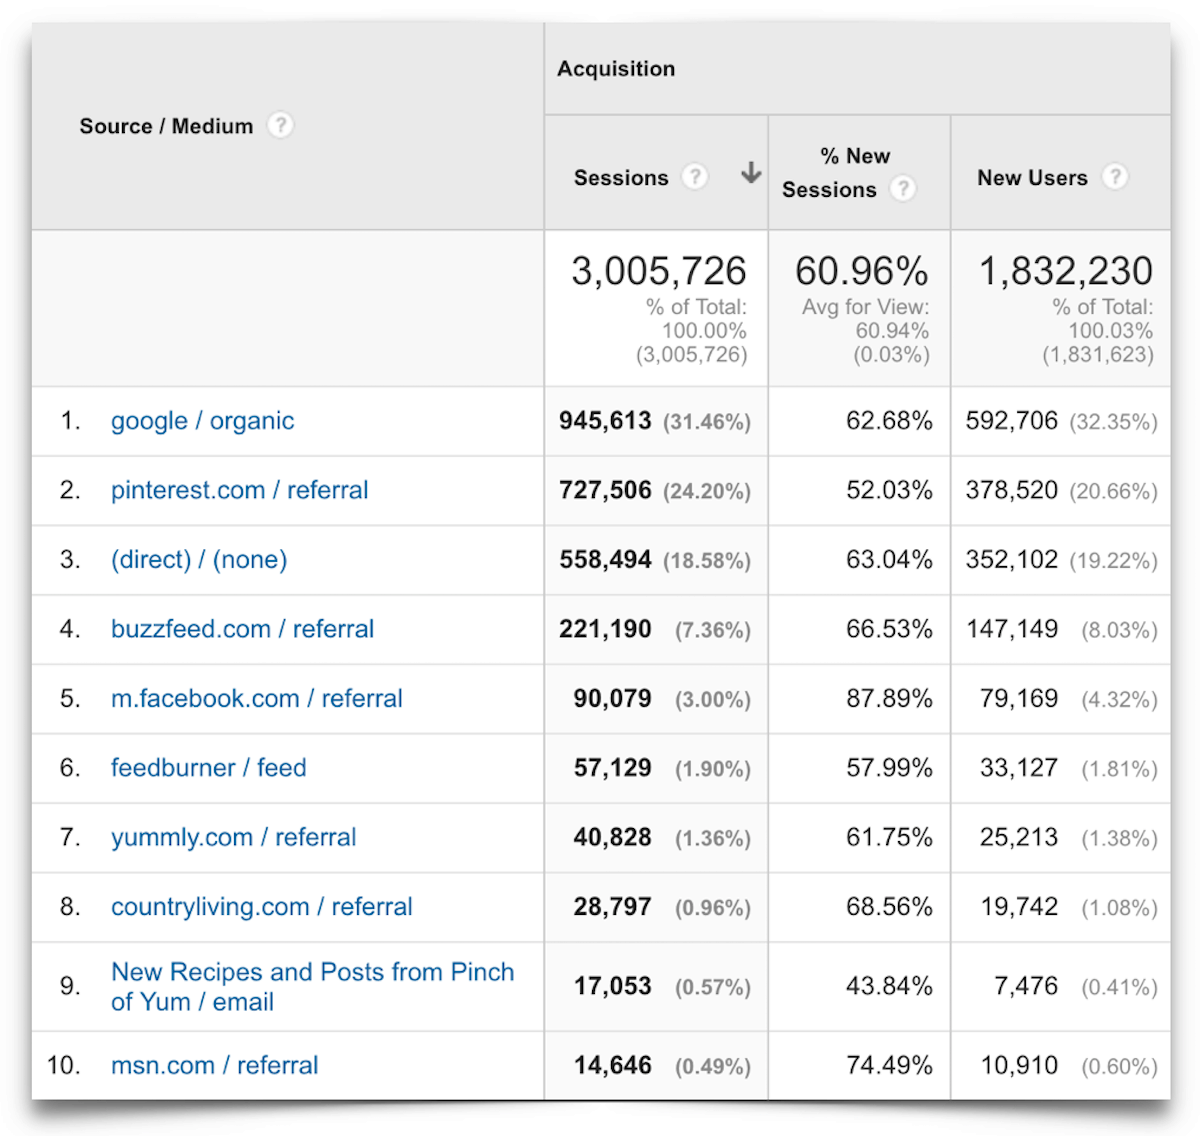 Top Ten Traffic Sources - May 2016